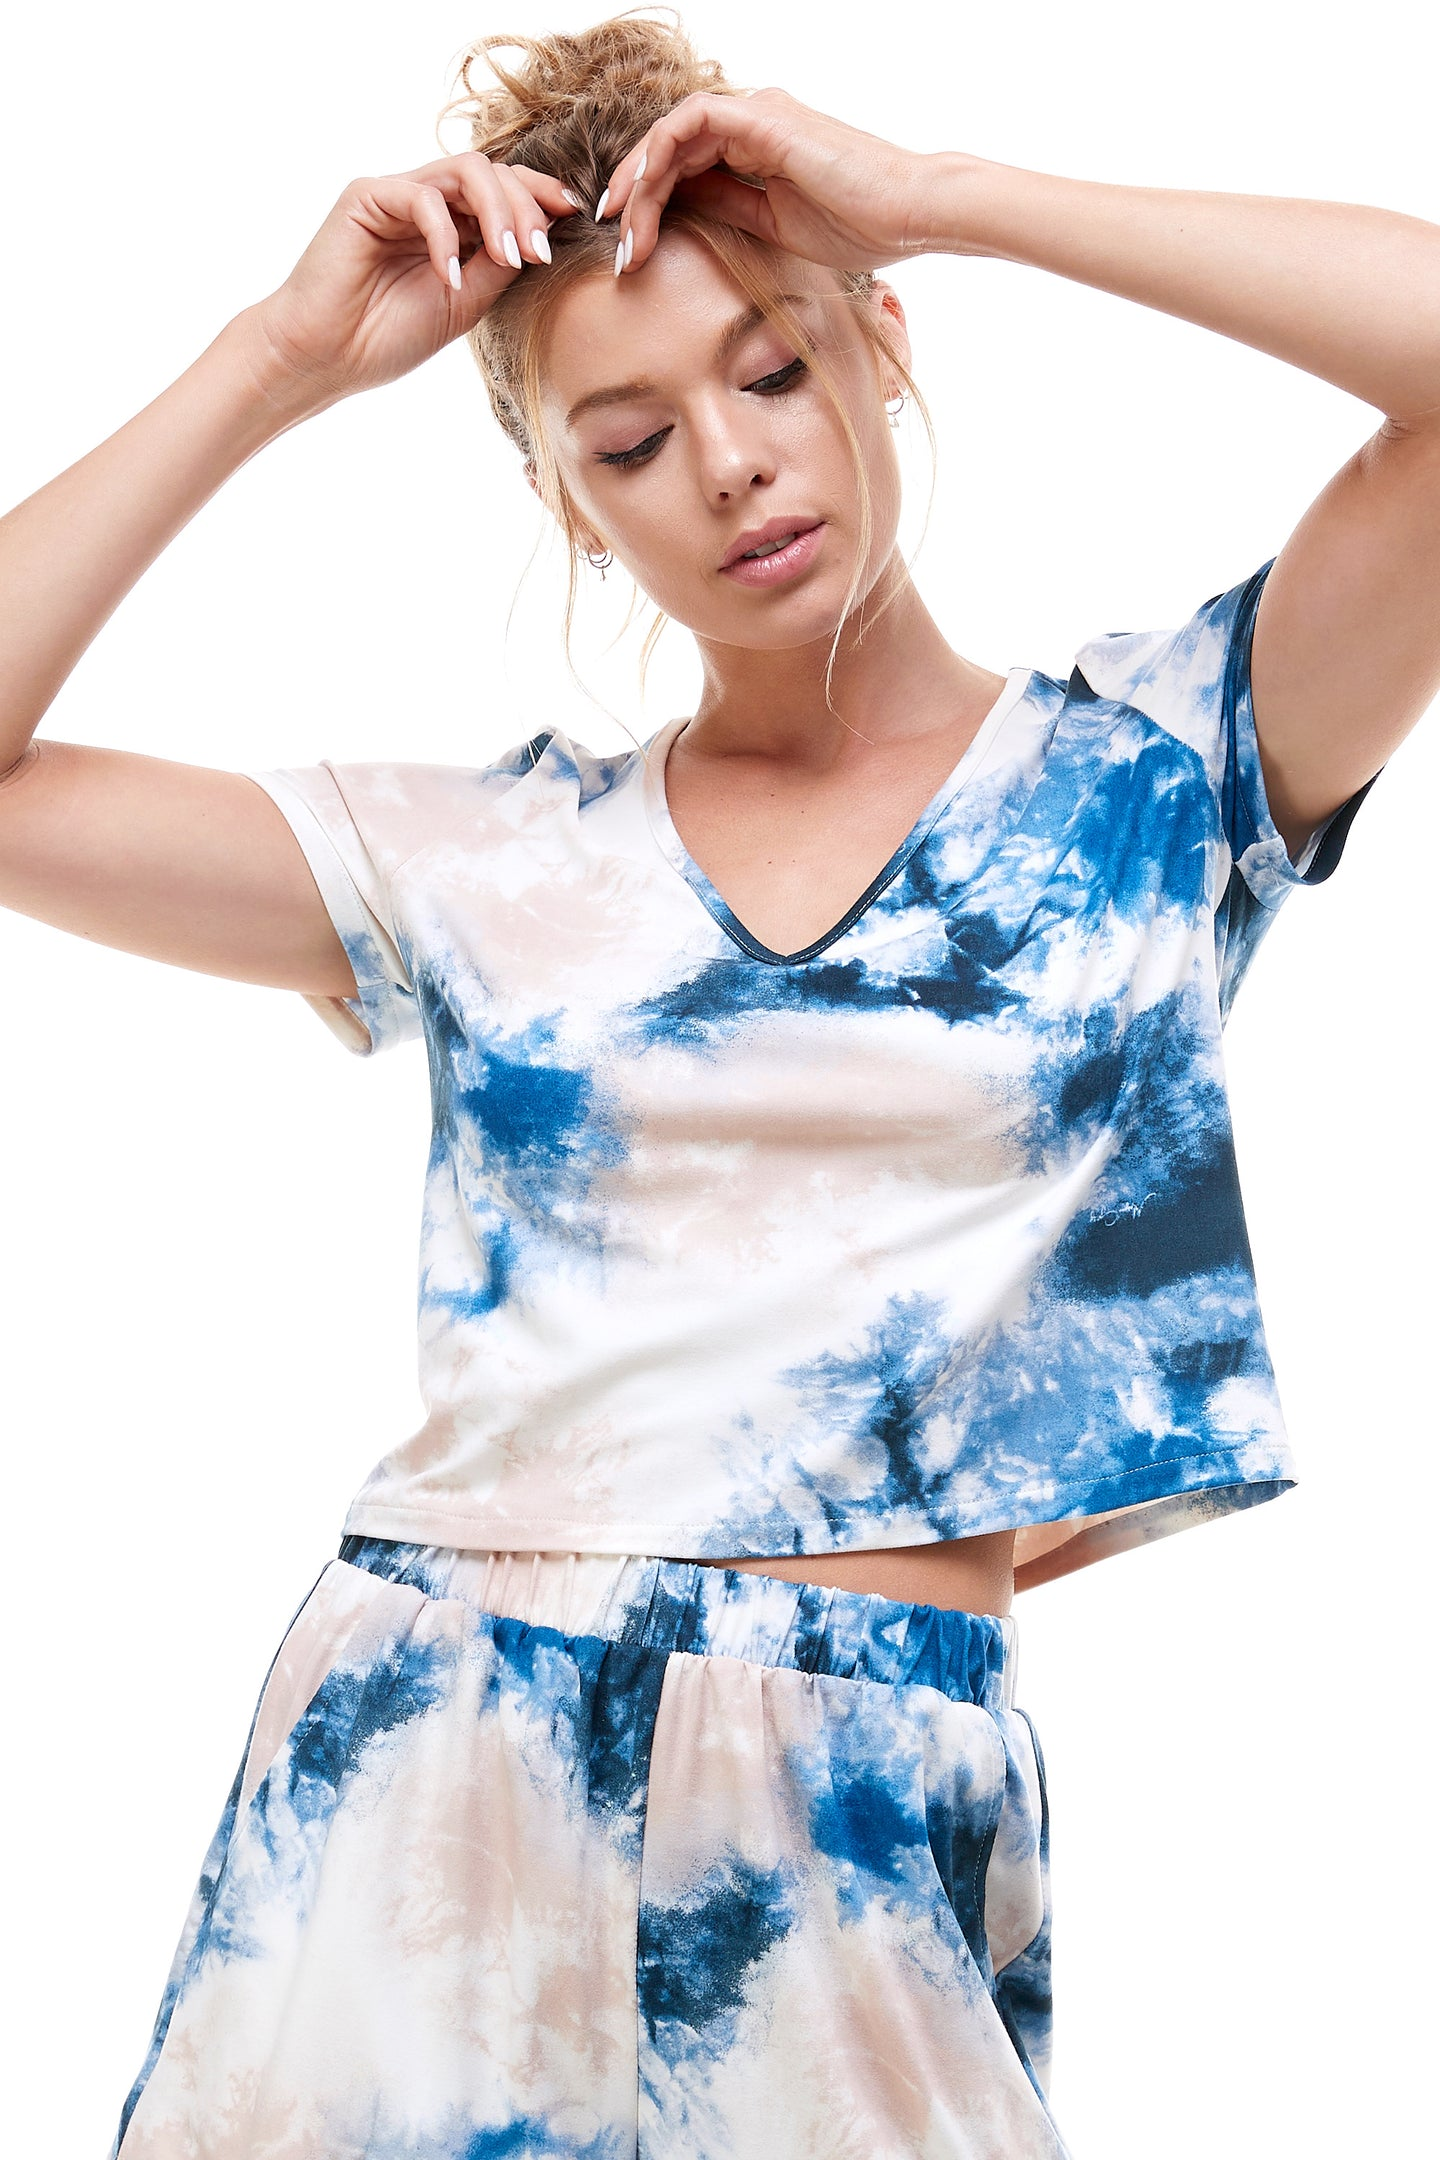 SLEEPY CROPPED T-SHIRT | DENIM TIE DYE - BLACK FRIDAY